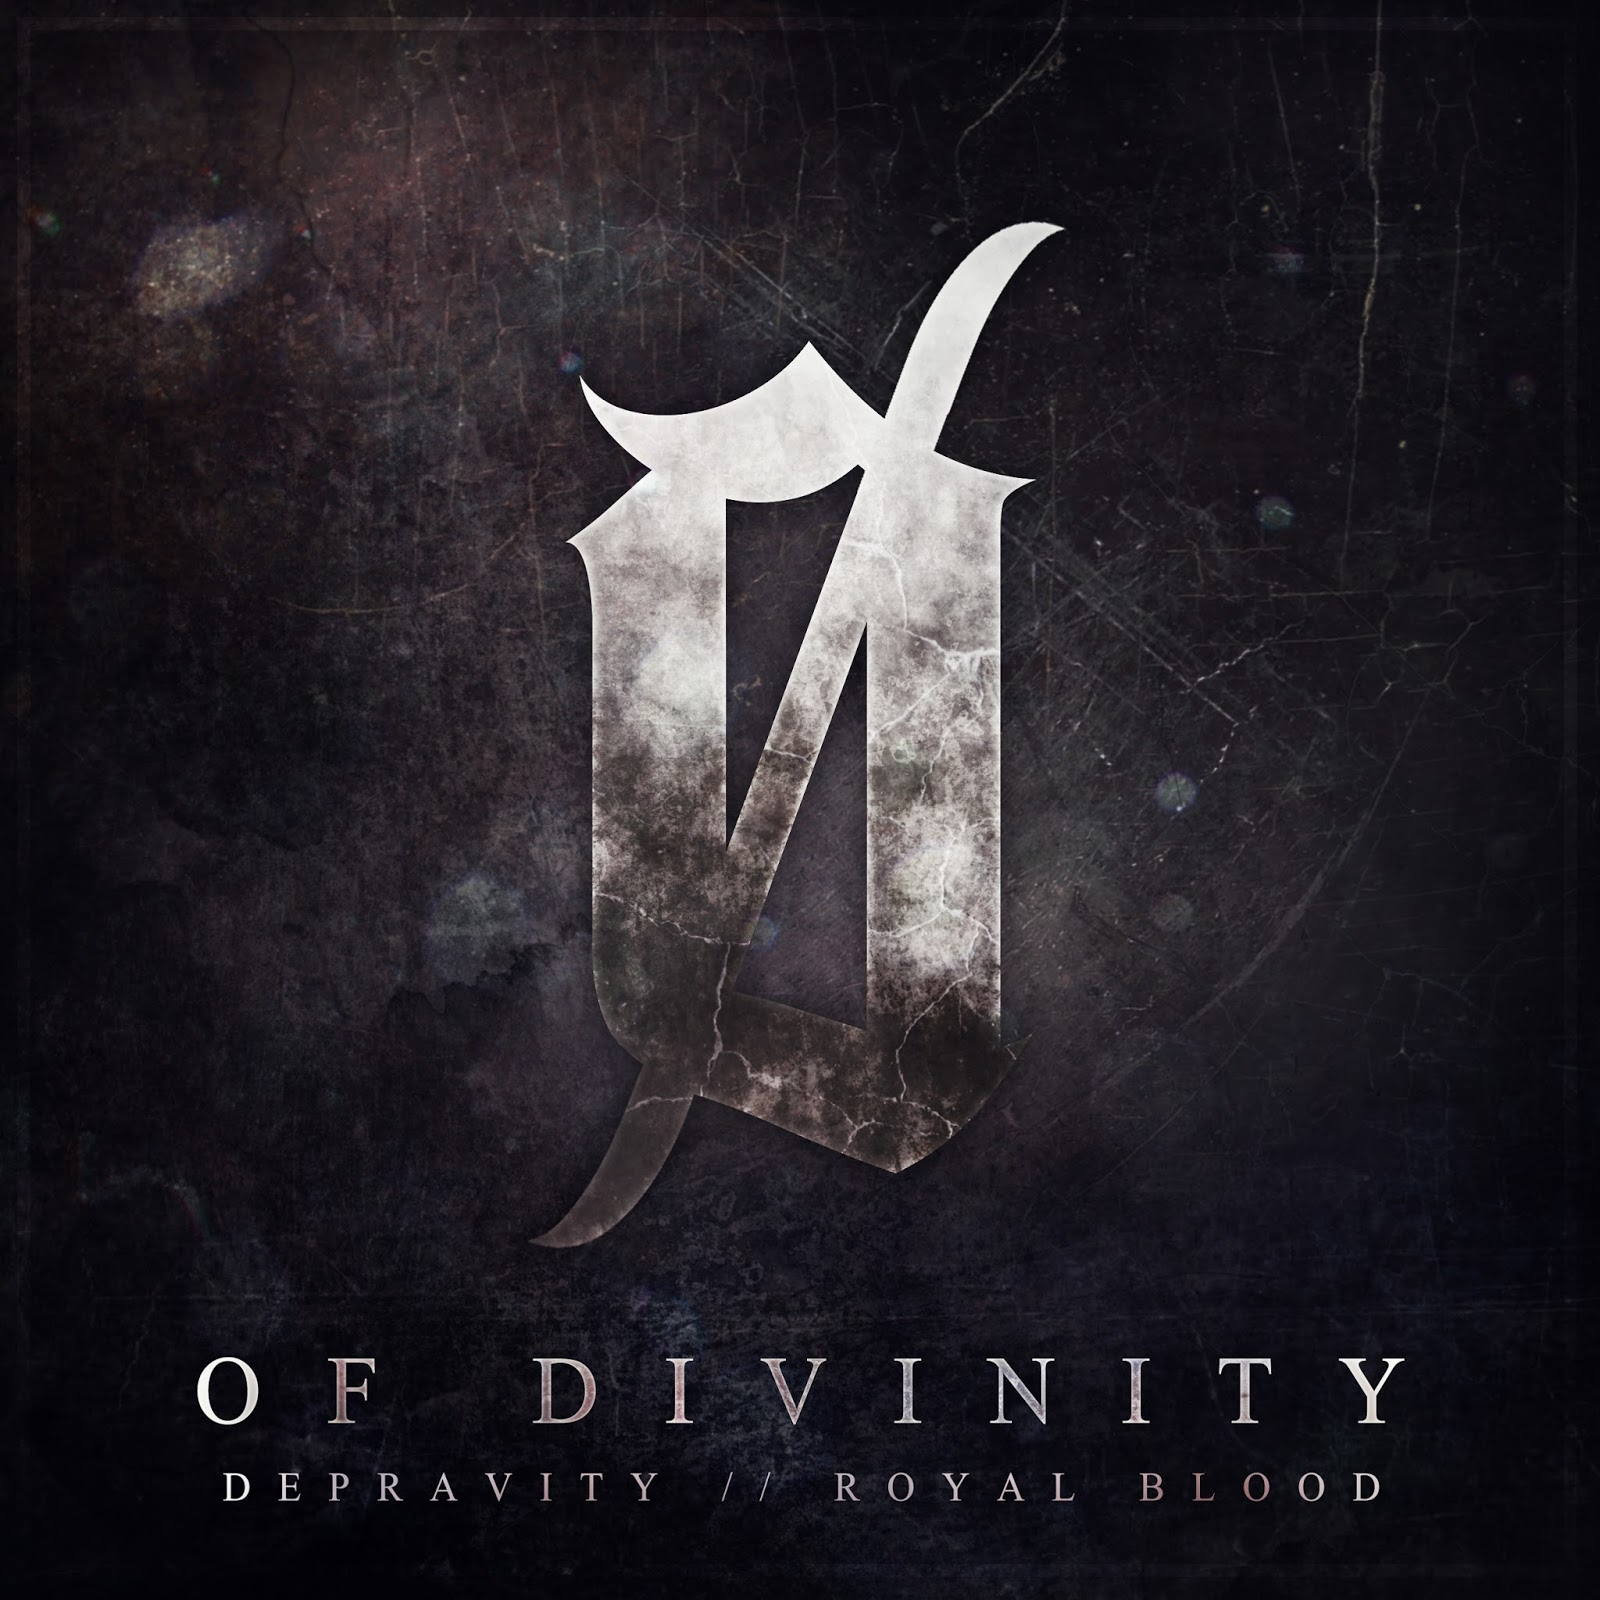 Of Divinty - Depravity // Royal Blood (Single) (2015)